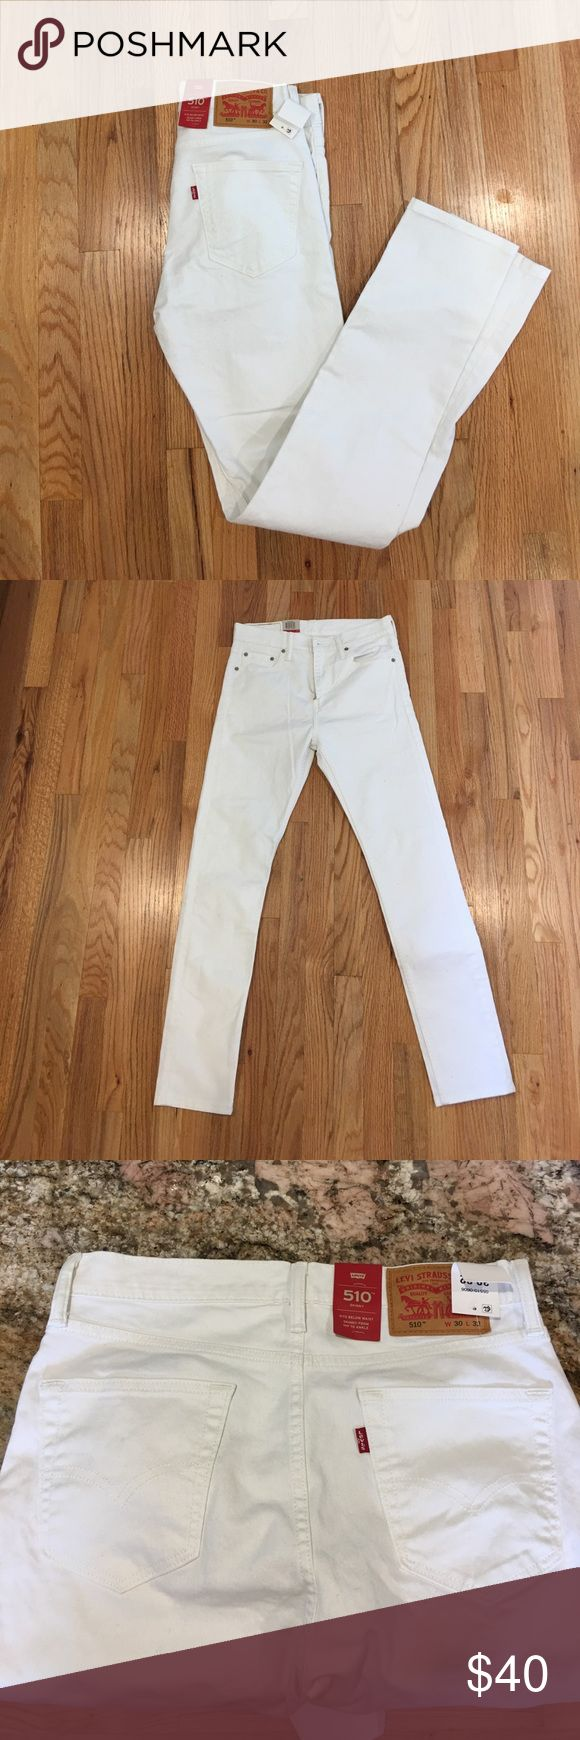 All white levi 510 skinny jeans in 30w 32L All white 510 levi skinny jeans in 30w 32L brand new with tags never worn. Levi's Jeans Skinny